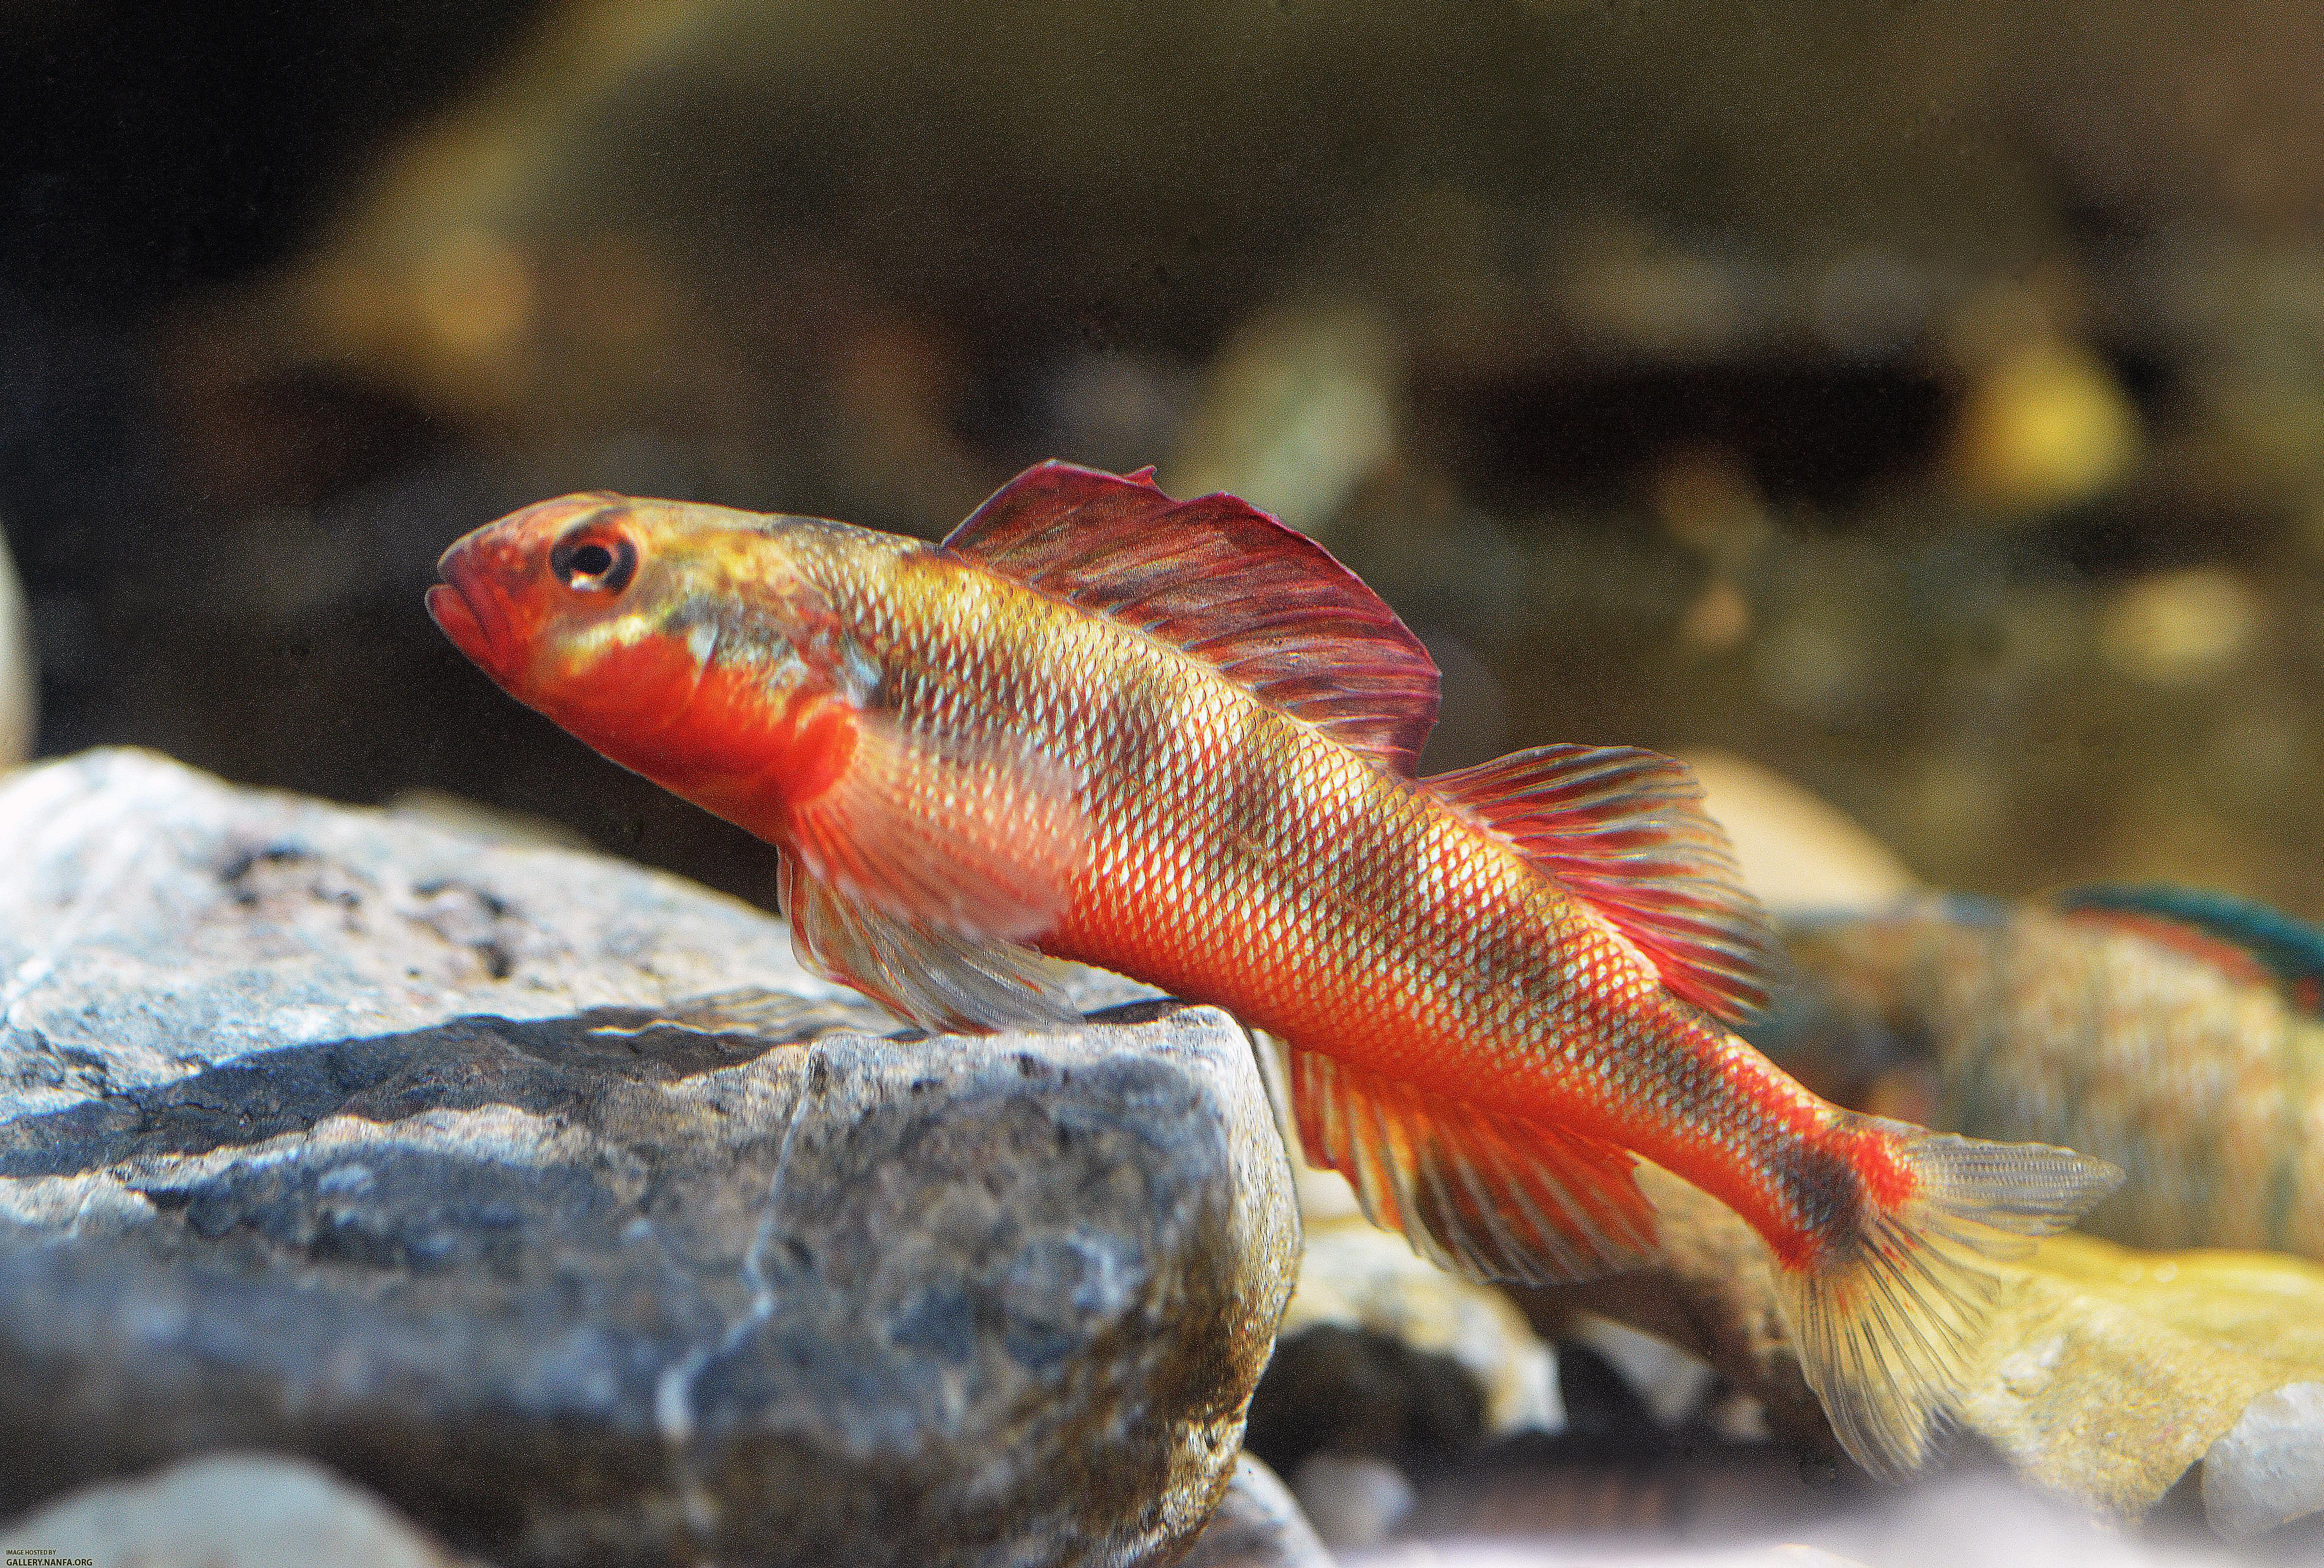 Large nuptial male gilt darter